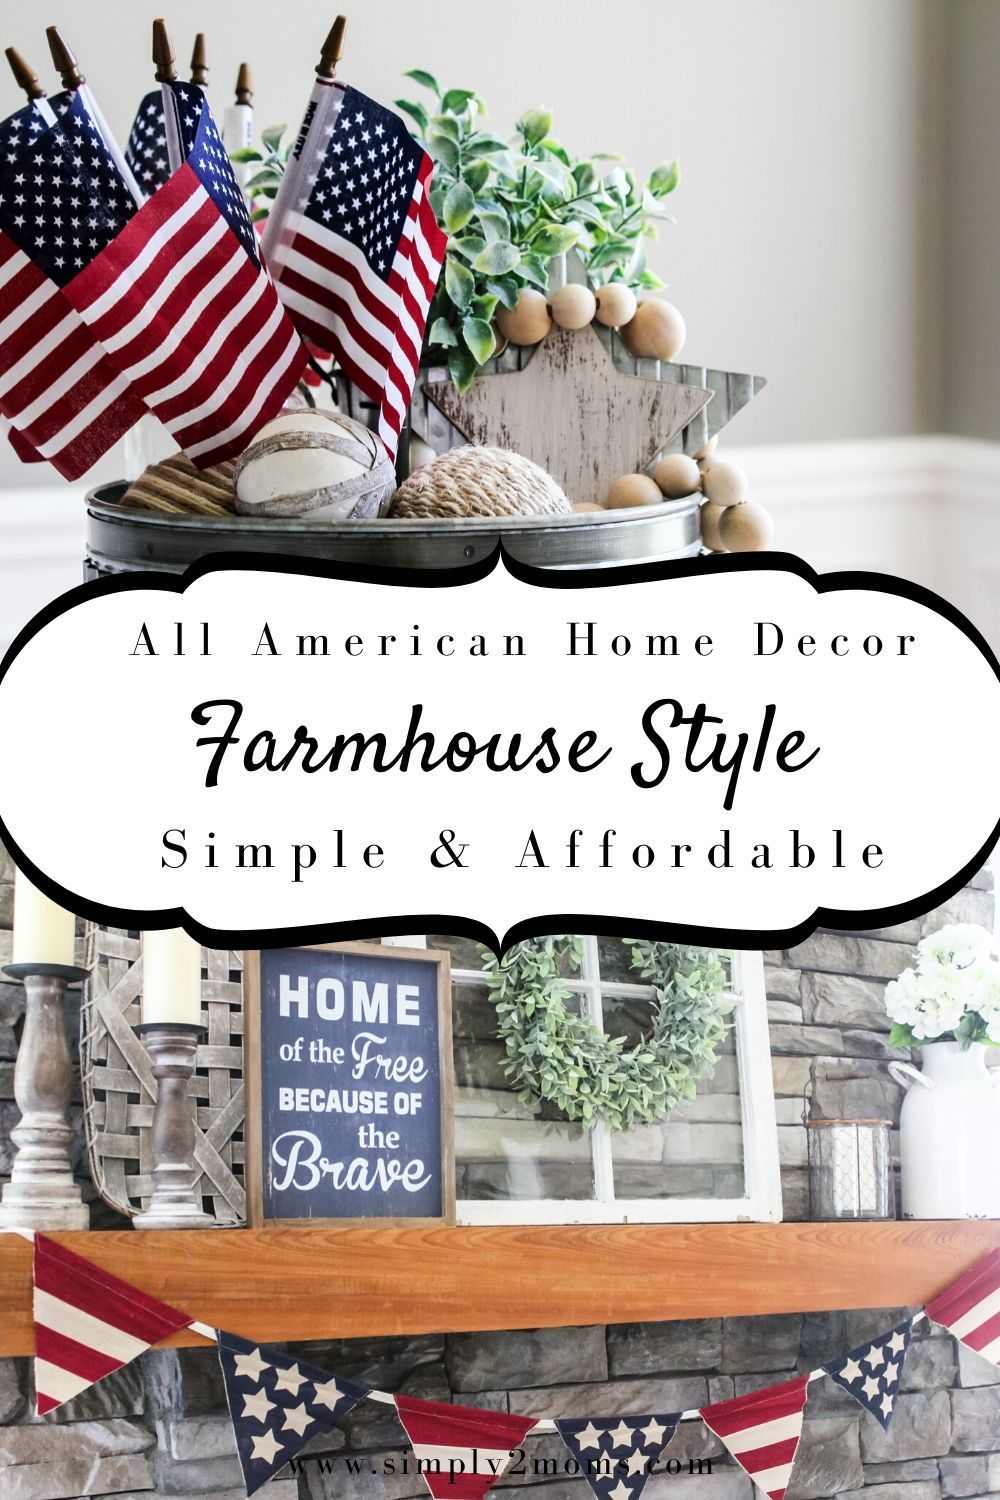 Red, white, and blue are always in style! Celebrate America with simple and affordable patriotic home decor ideas. Inspiration to show your patriotism. #patrioticdecor #redwhiteandblue #fourthofjuly #homedecor #flagday #memorialday #america #patriotism